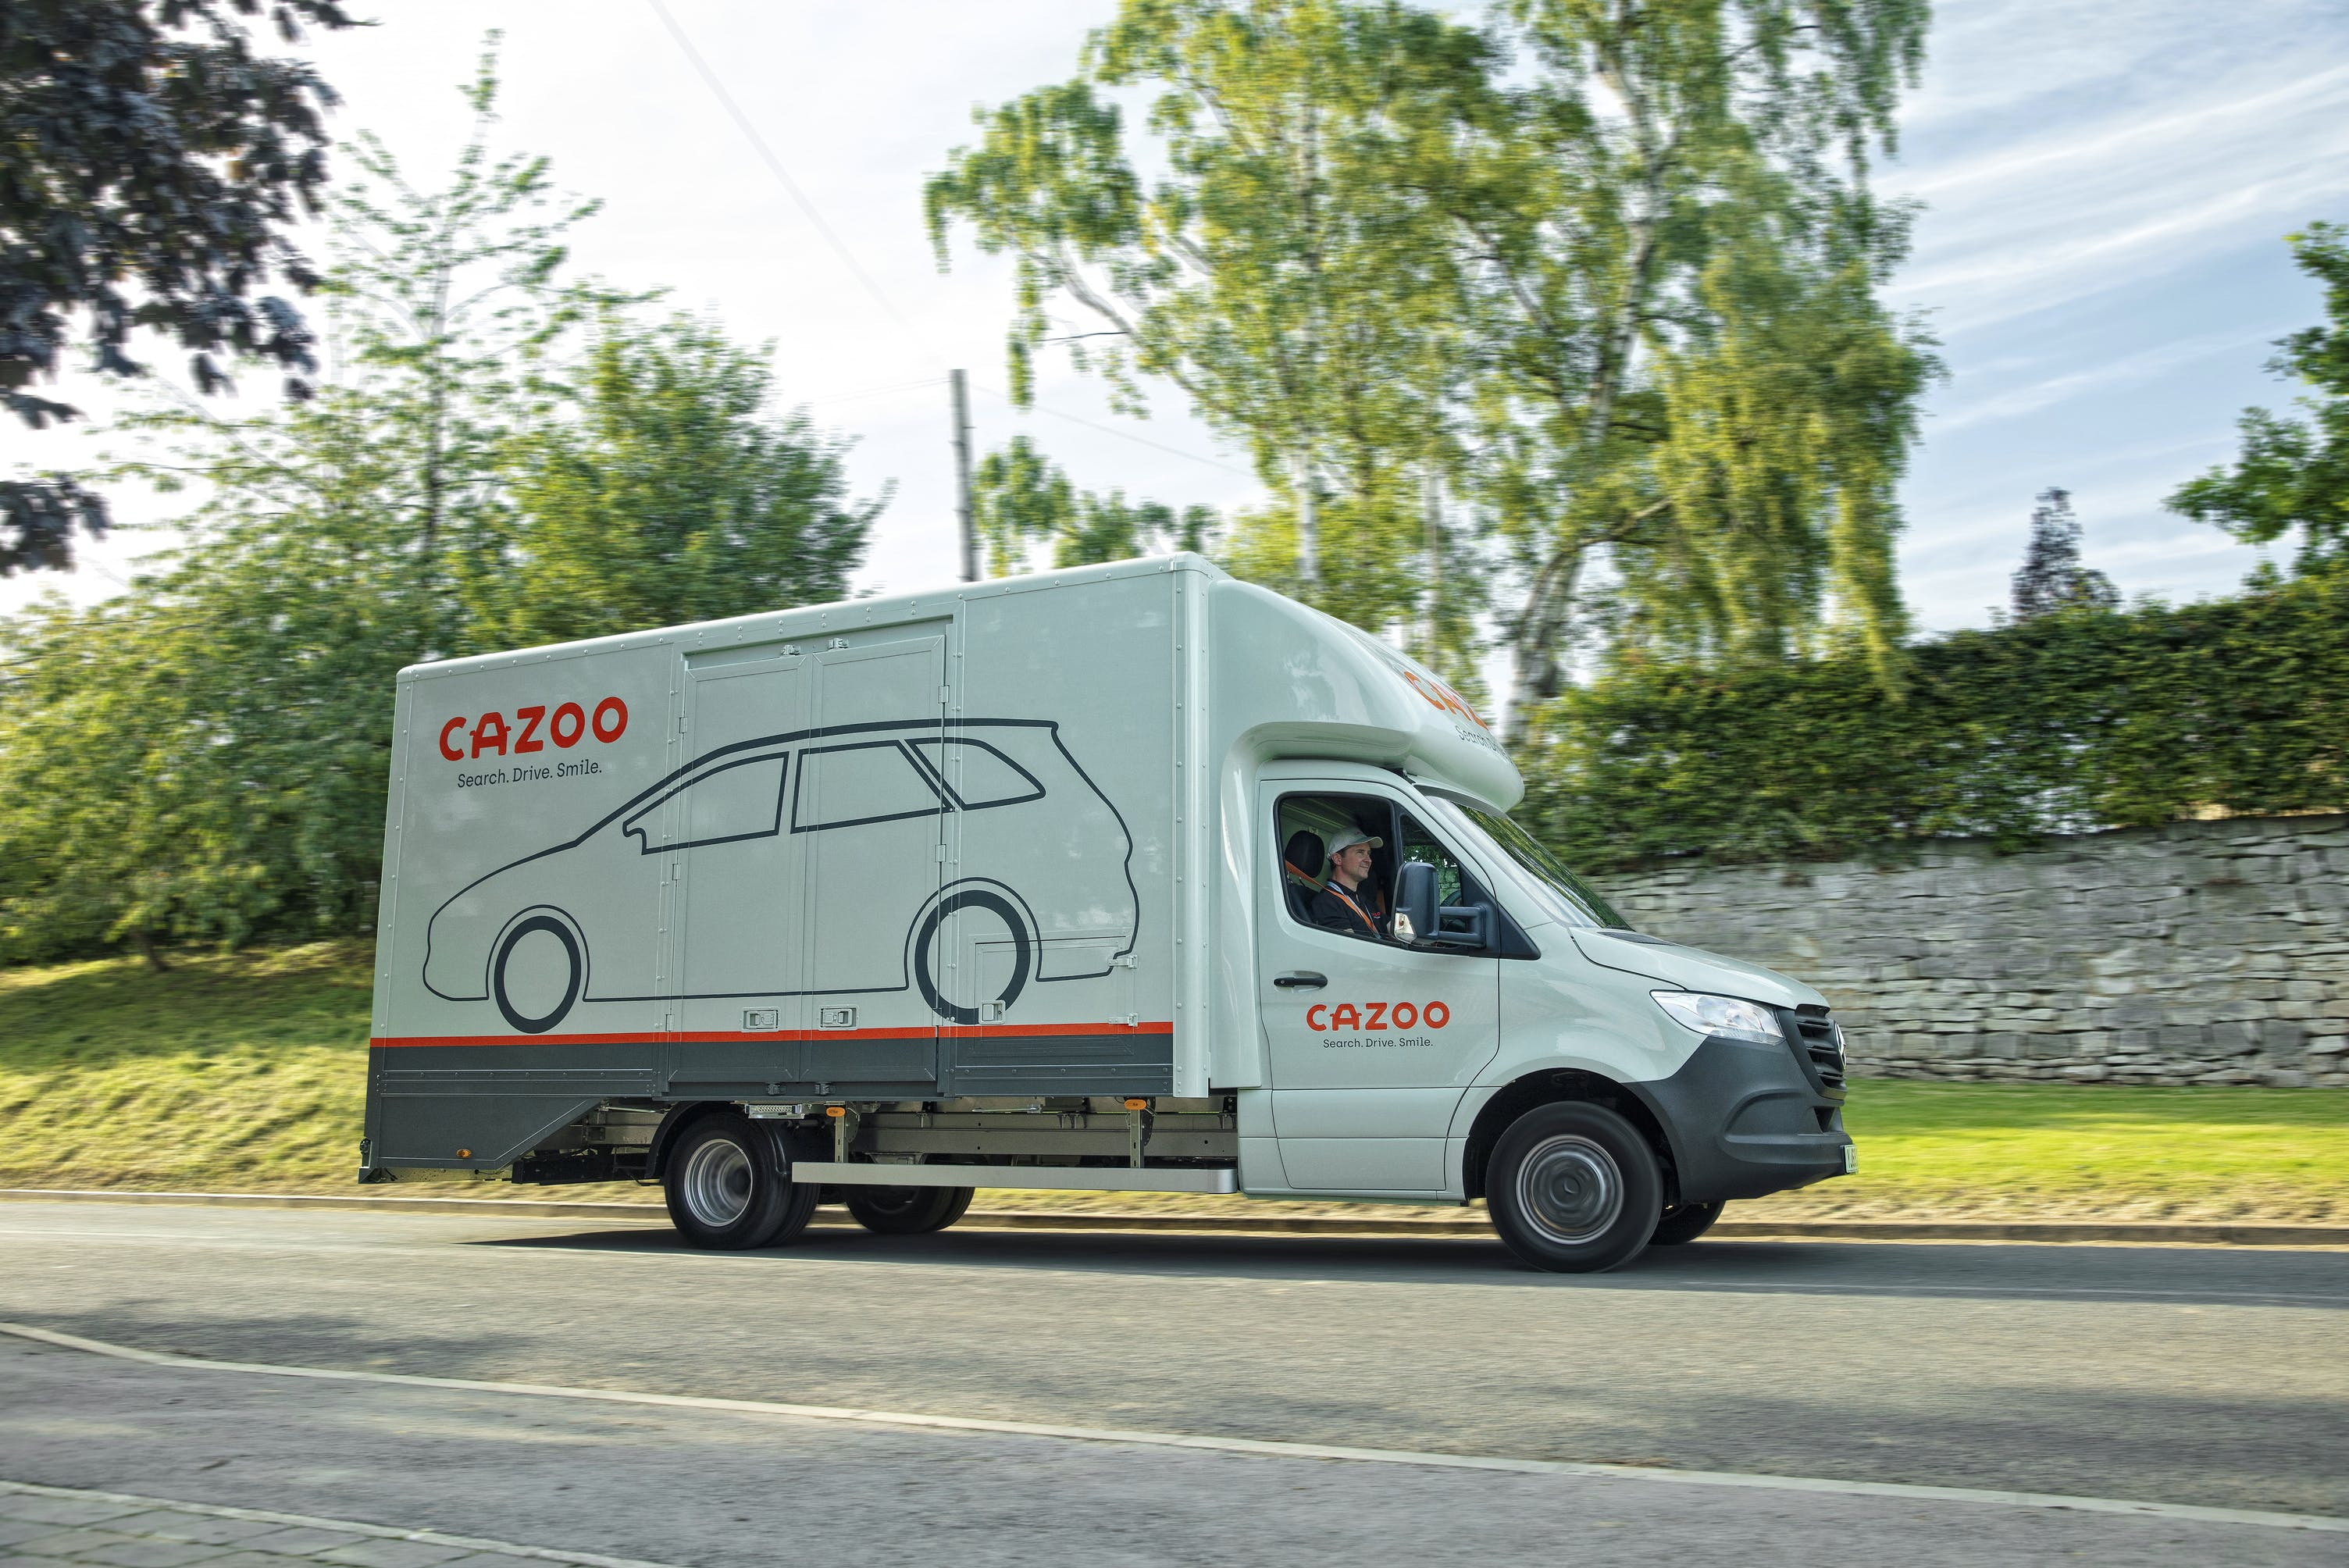 Moving Cazoo car transporter